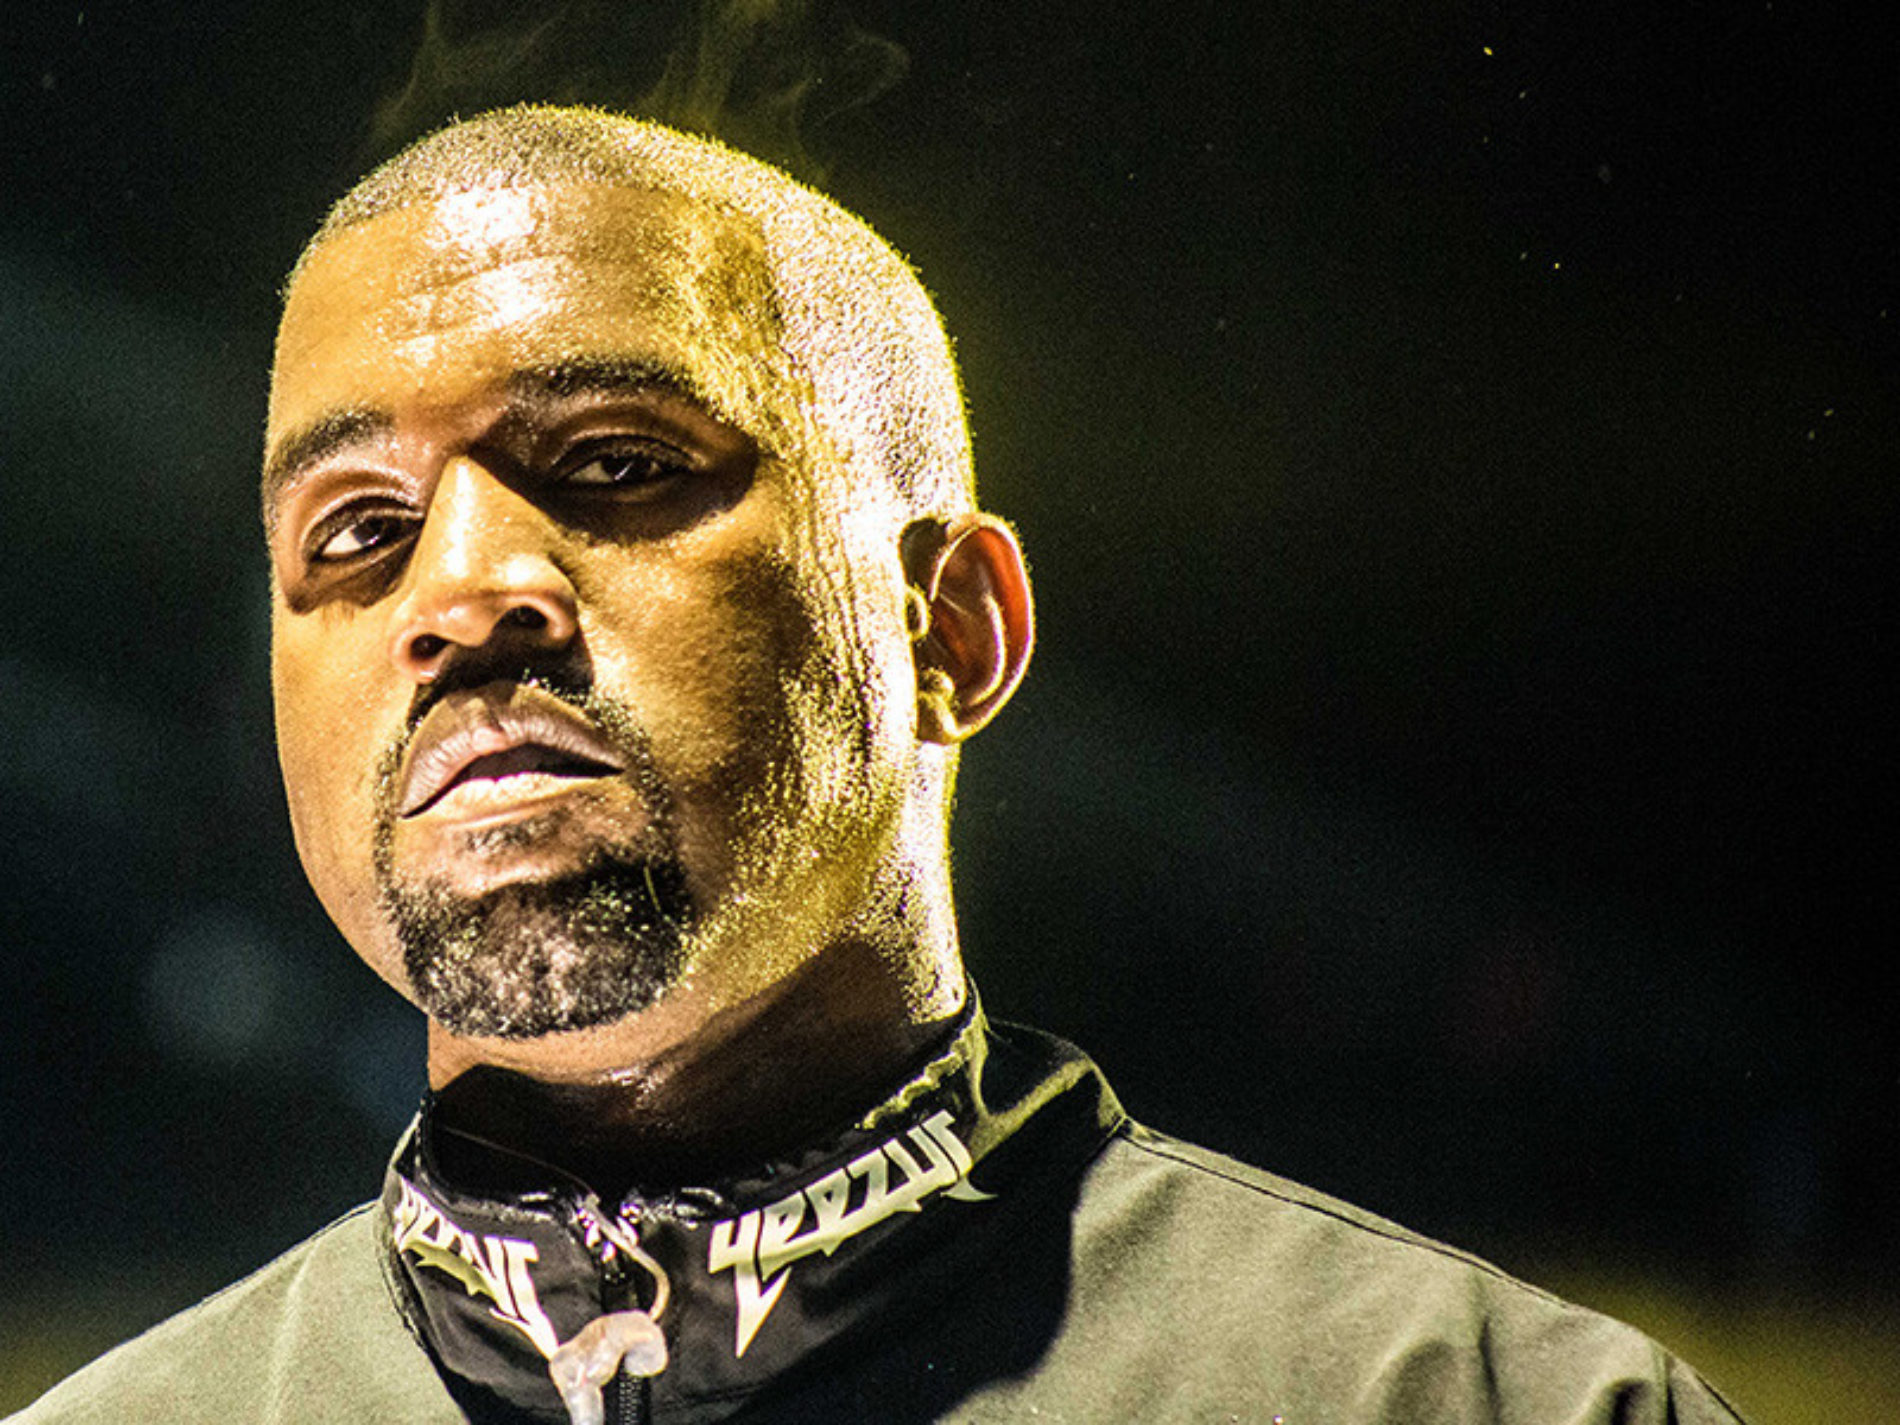 Kanye West goes on another stage rant against Beyoncé and Jay Z, Fans react on twitter